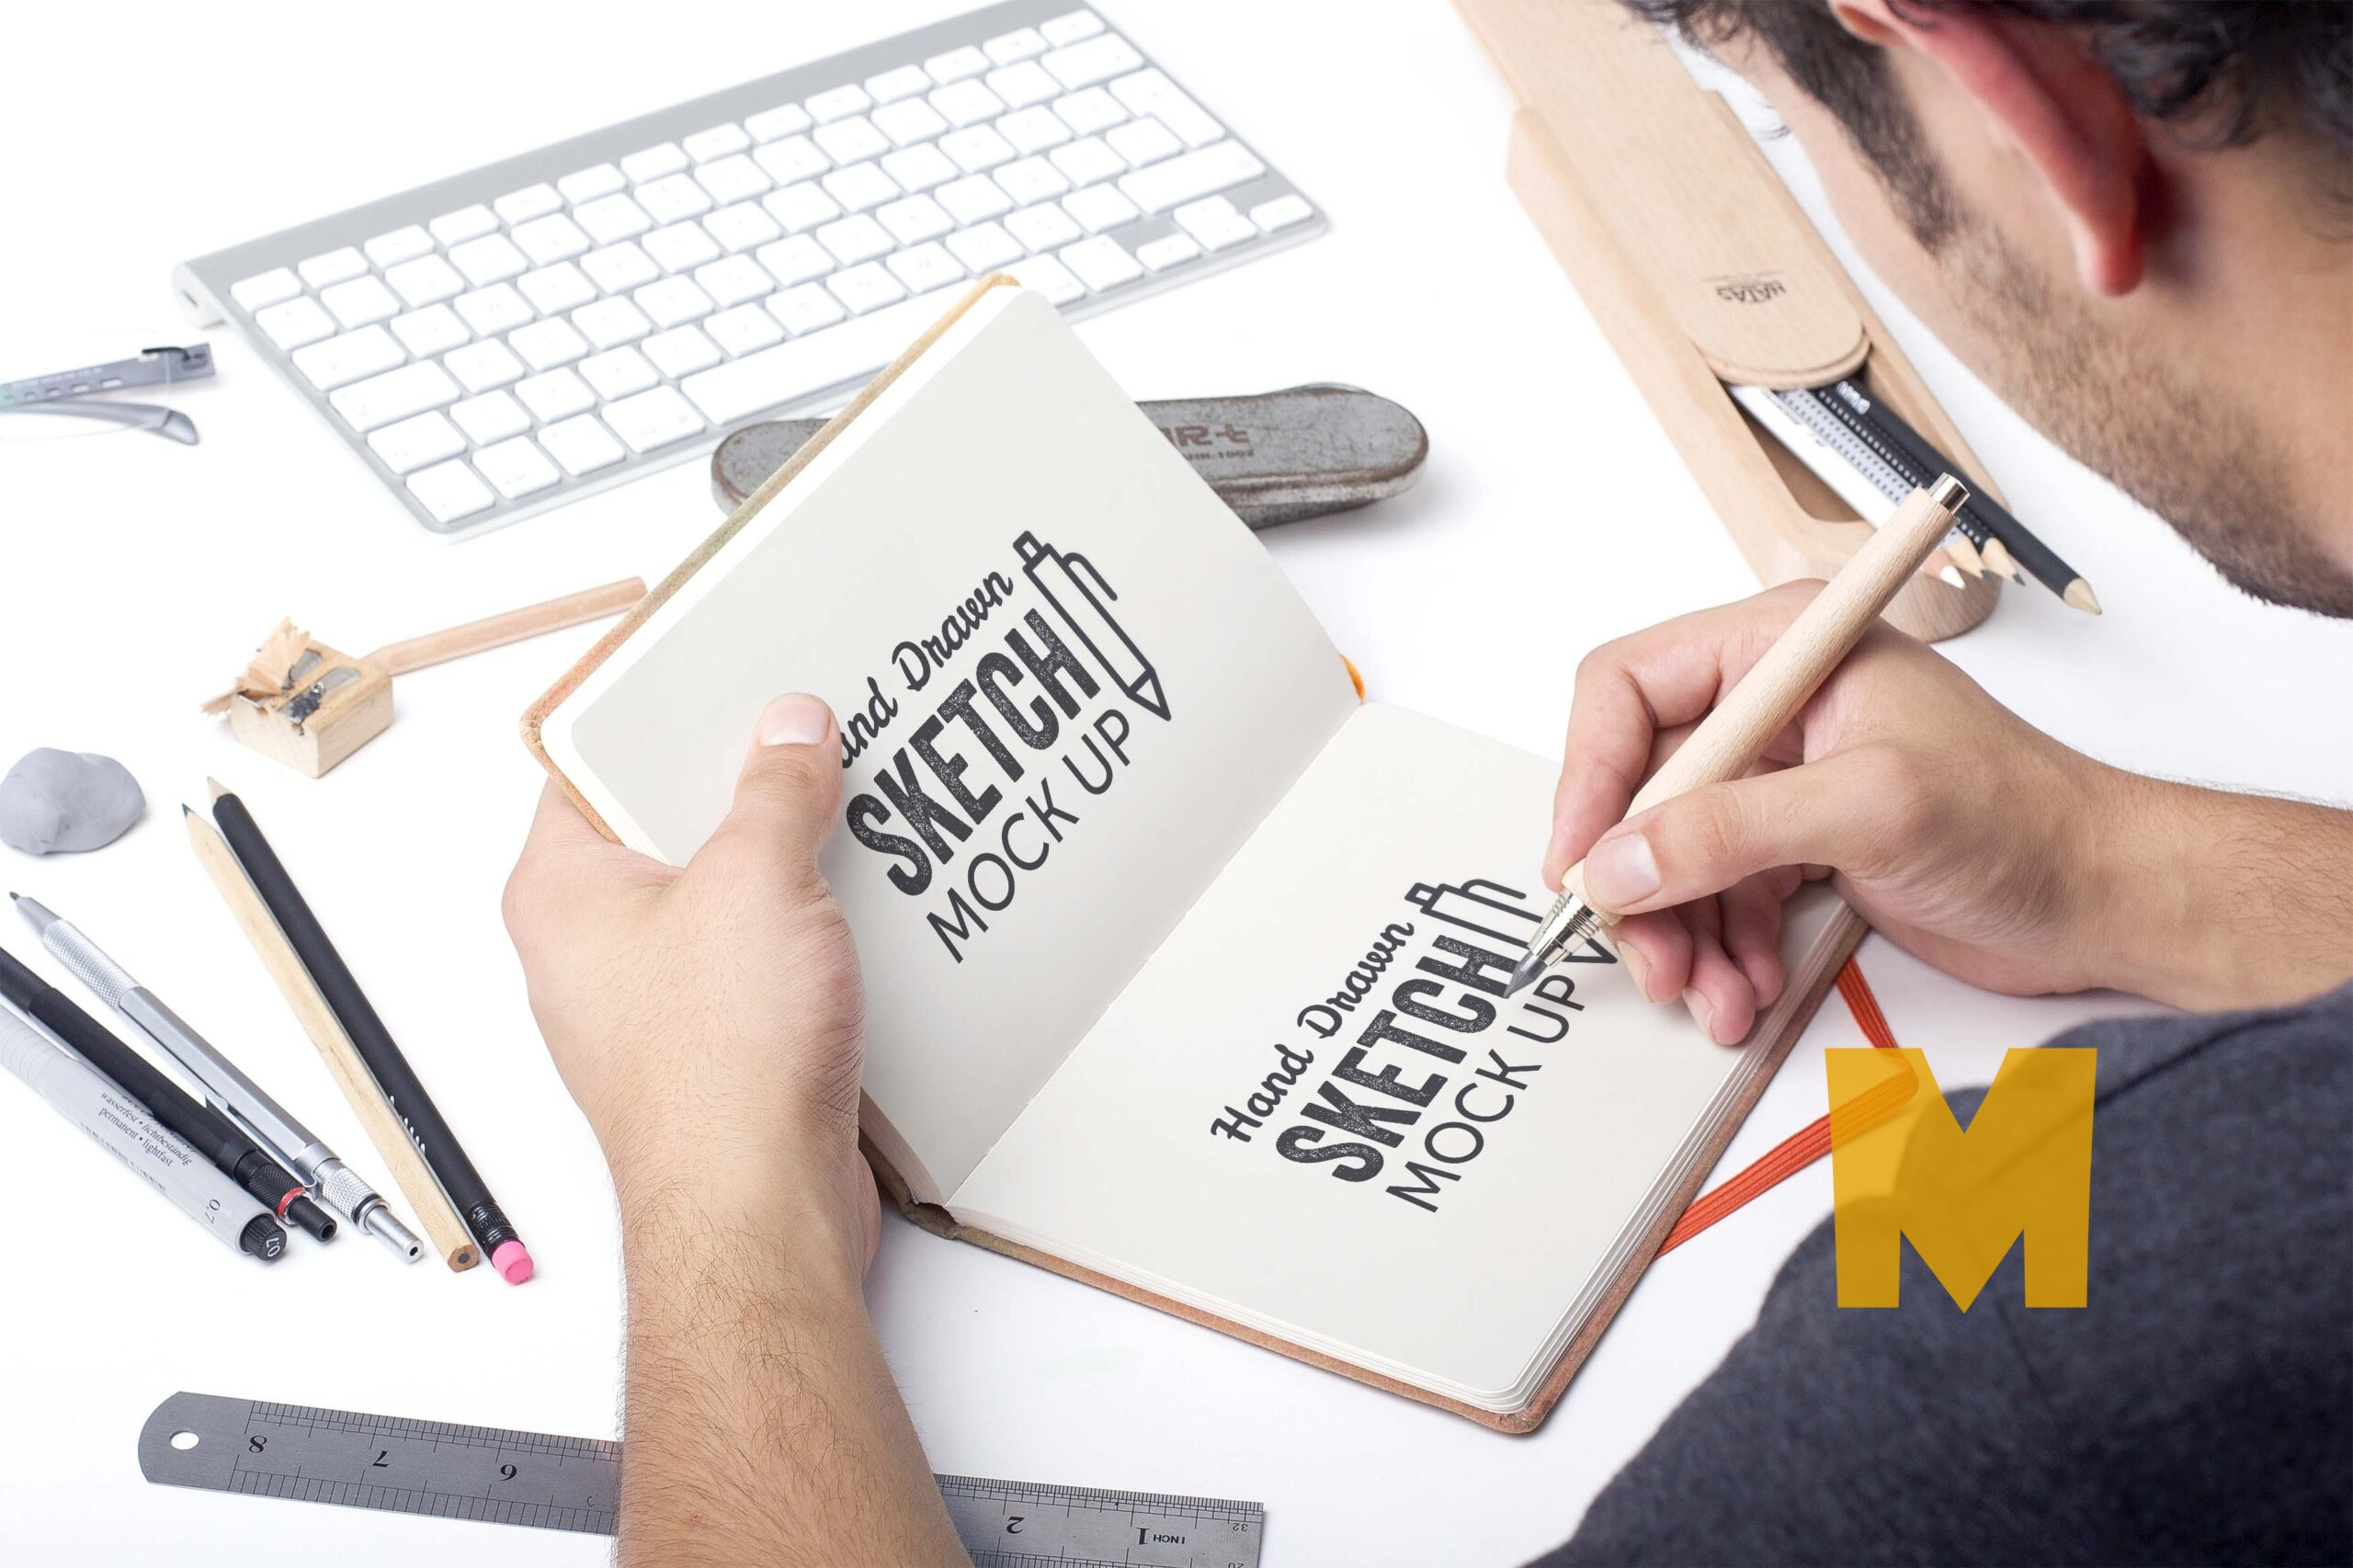 Free Sketch Book Drawing Mockup